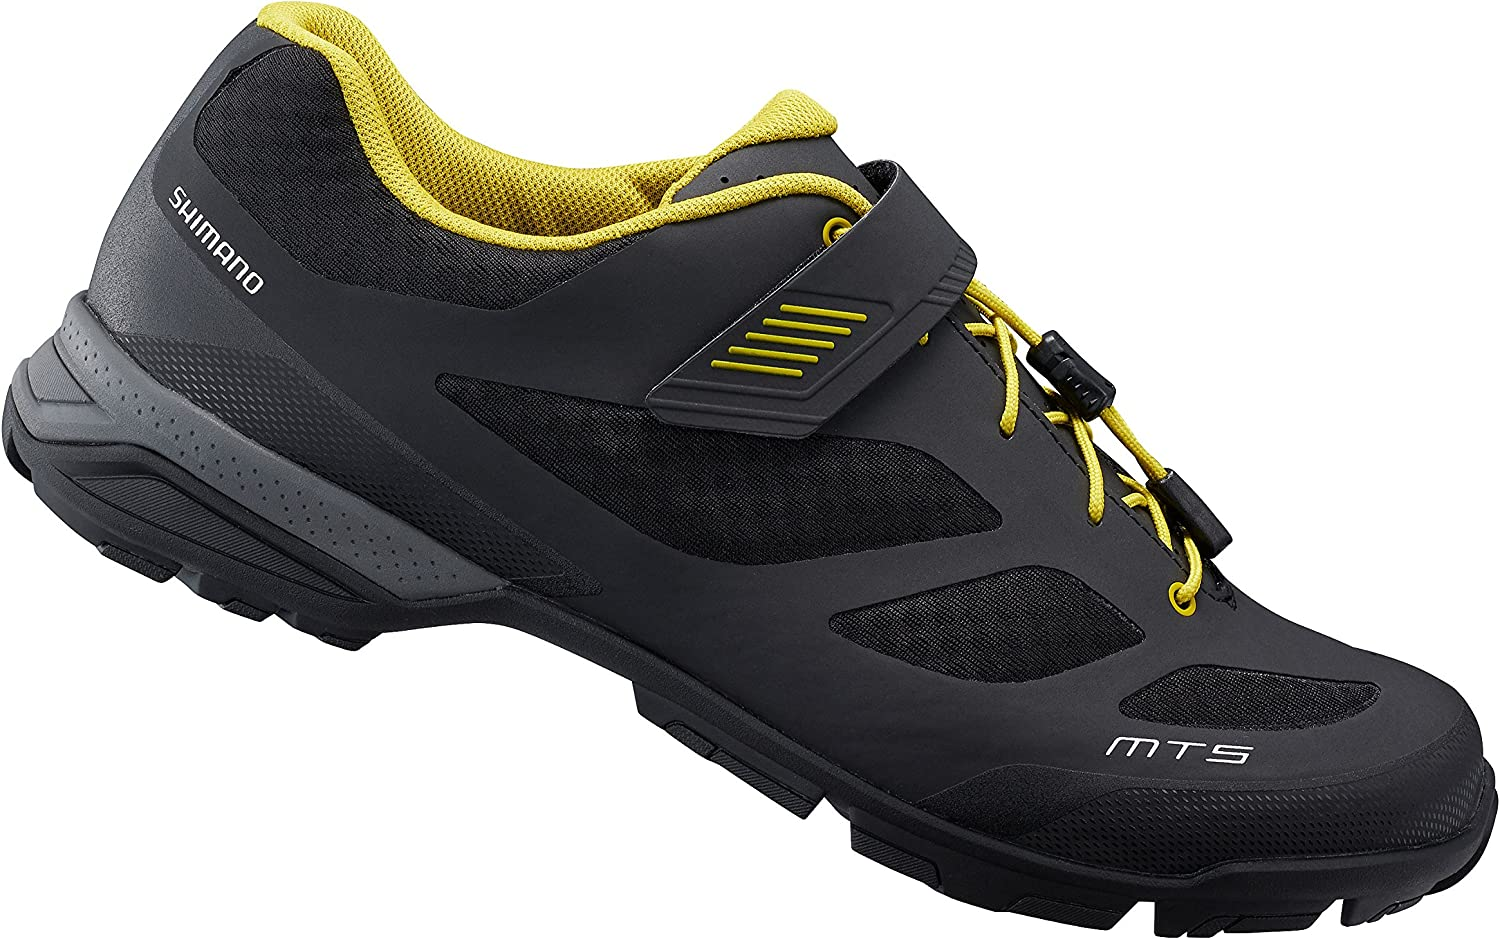 Shimano SH-MT501 - Zapatillas - Negro 2019: Amazon.es: Zapatos y complementos